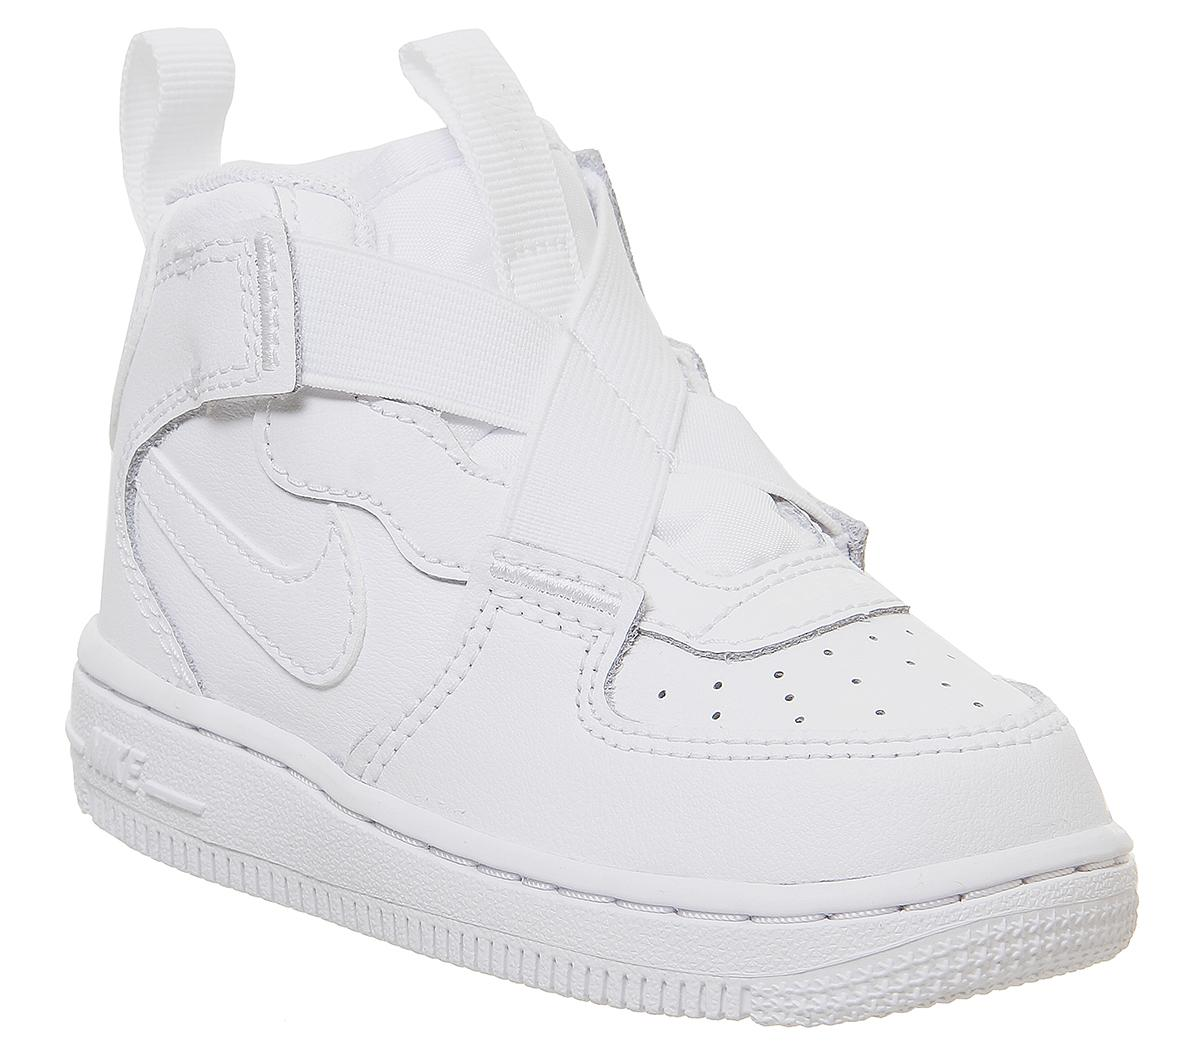 Force 1 Highness Td Trainers